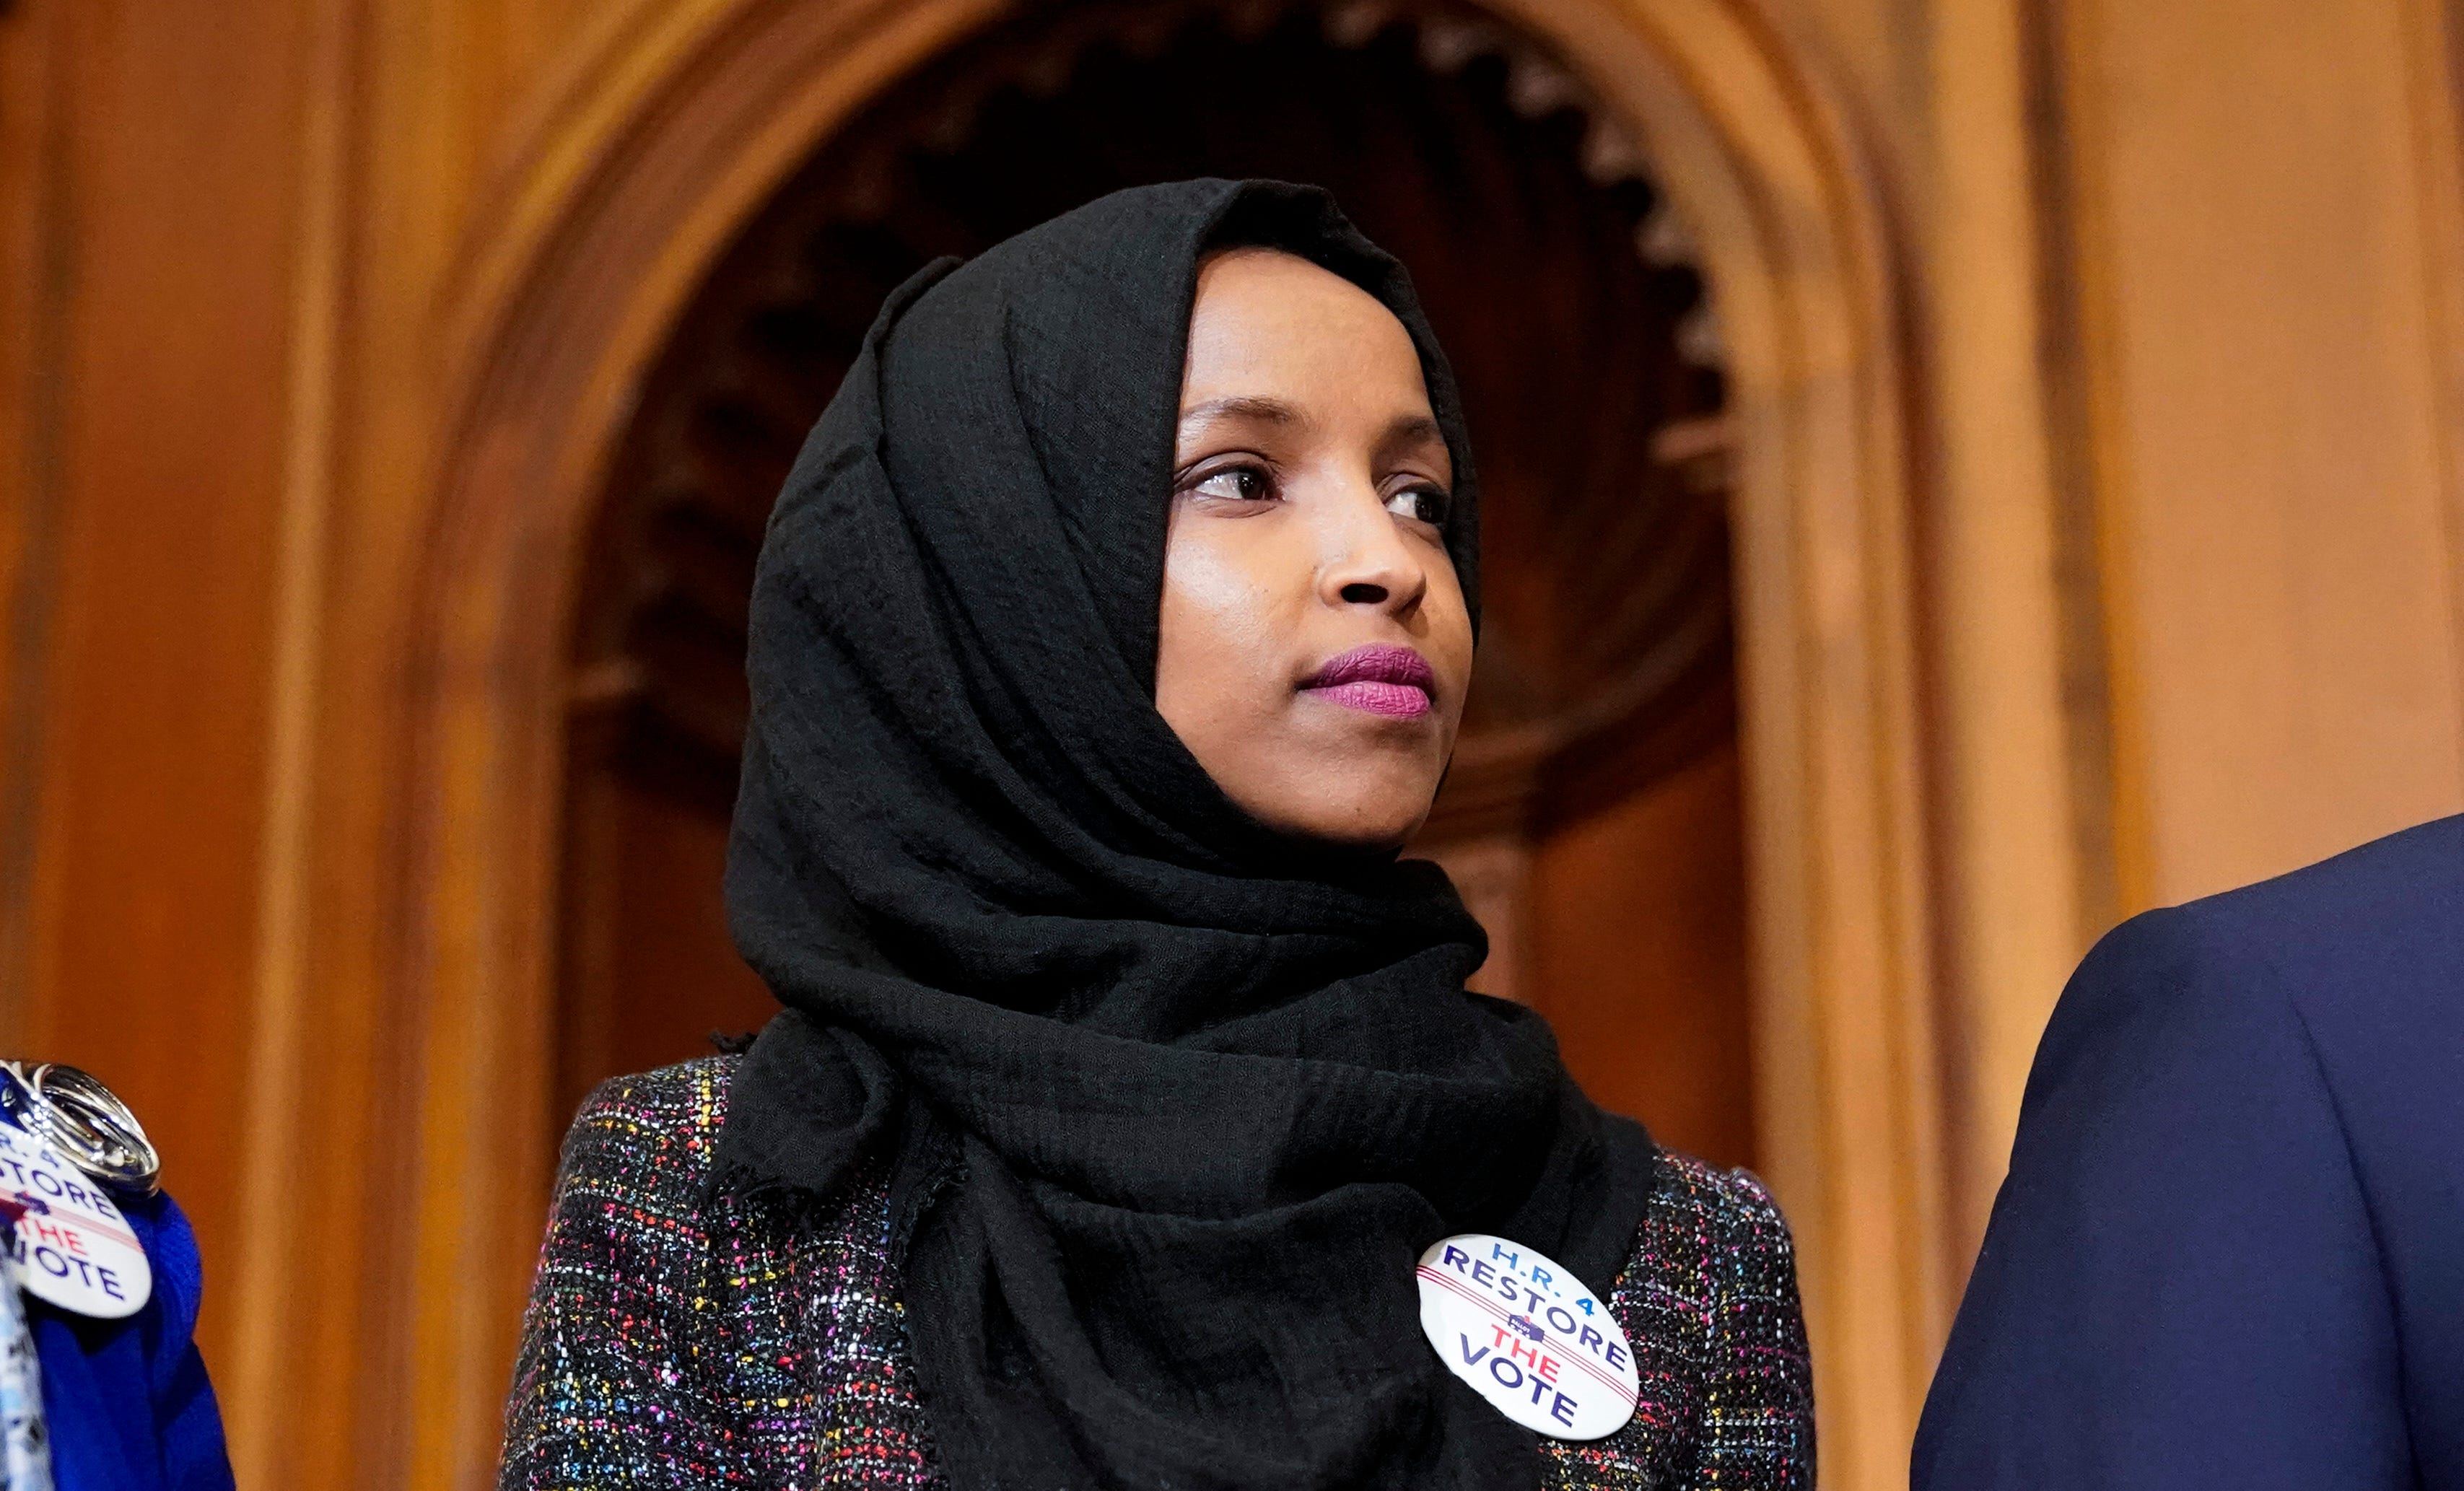 Rep. Ilhan Omar, D-Minn., joins lawmakers to speak about the Voting Rights Enhancement Act on Feb. 26, 2019.